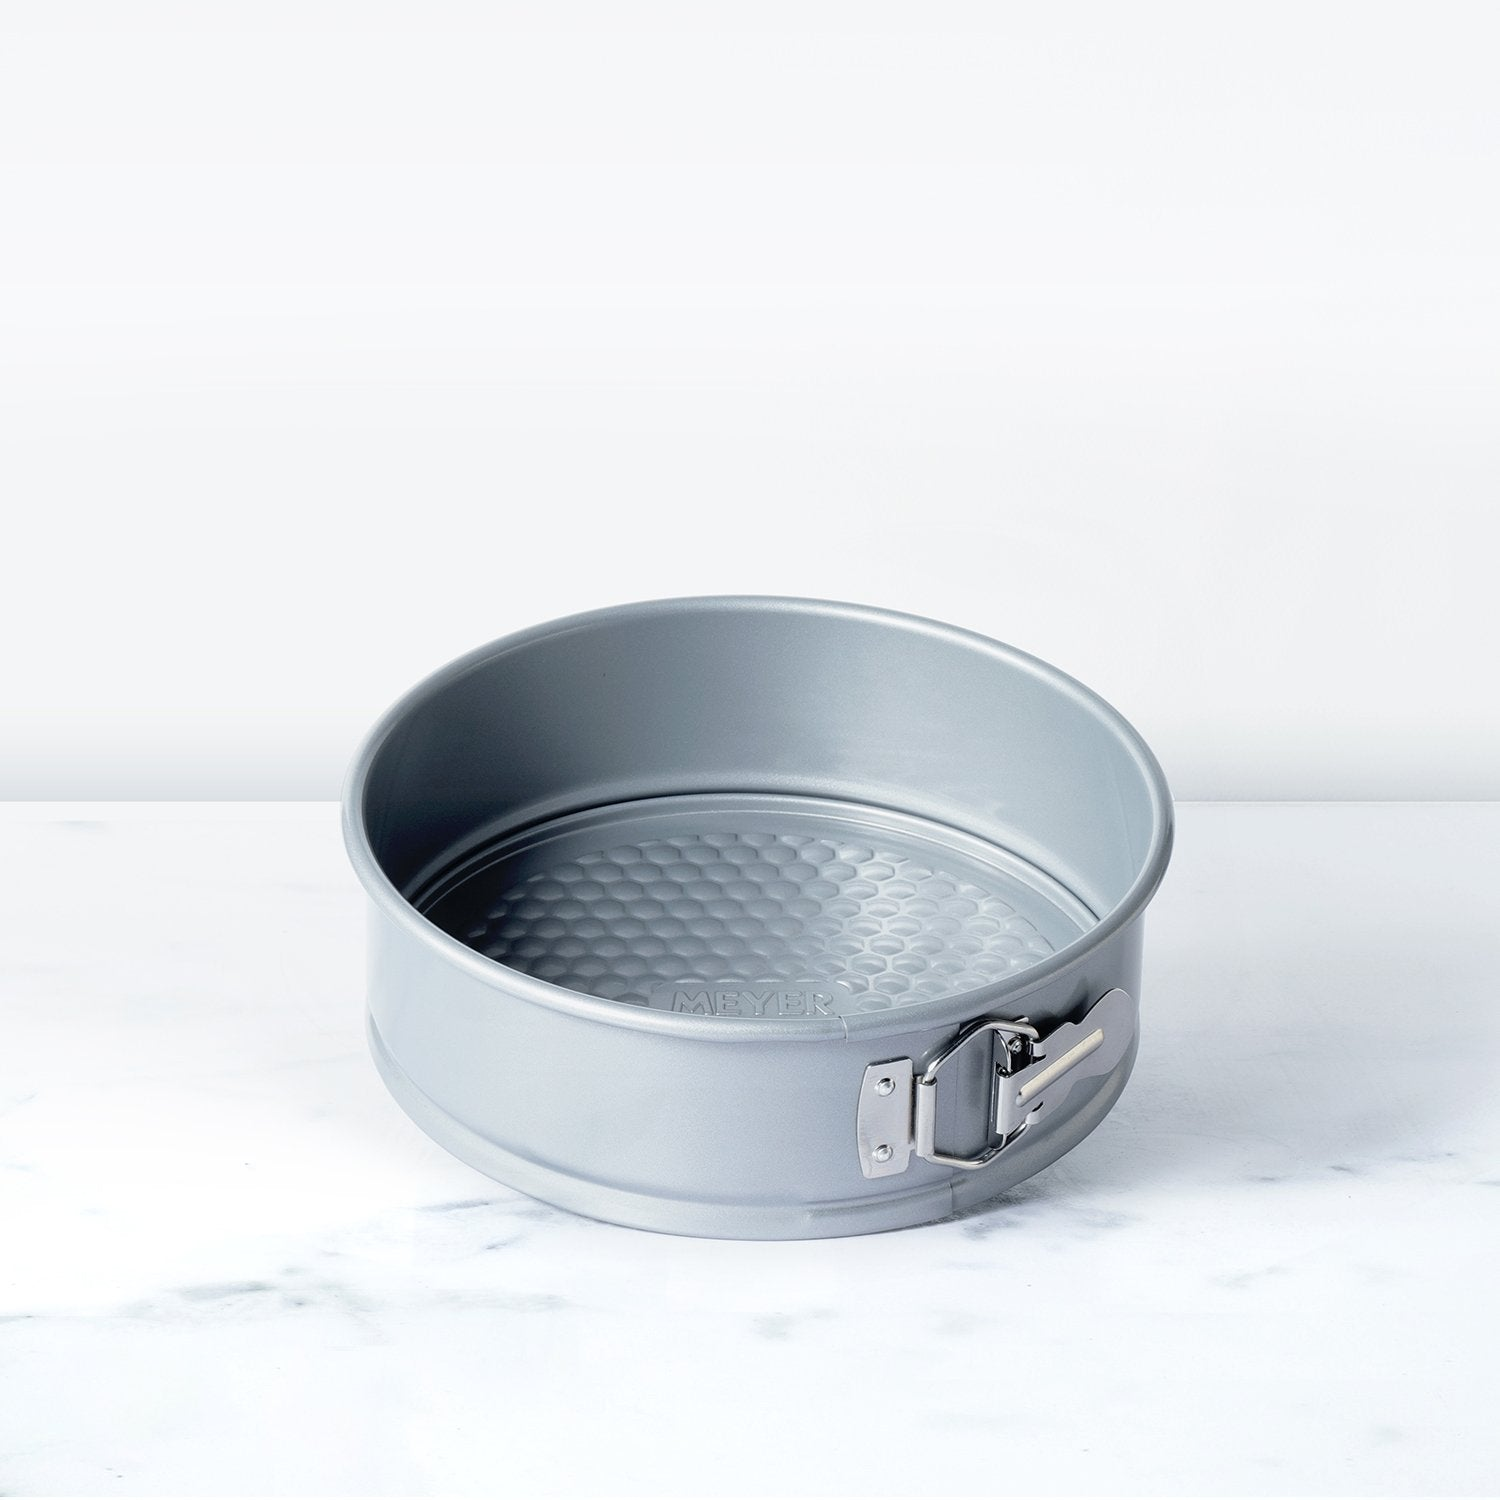 Meyer Bakemaster 23cm Springform Cake Tin - Pots and Pans